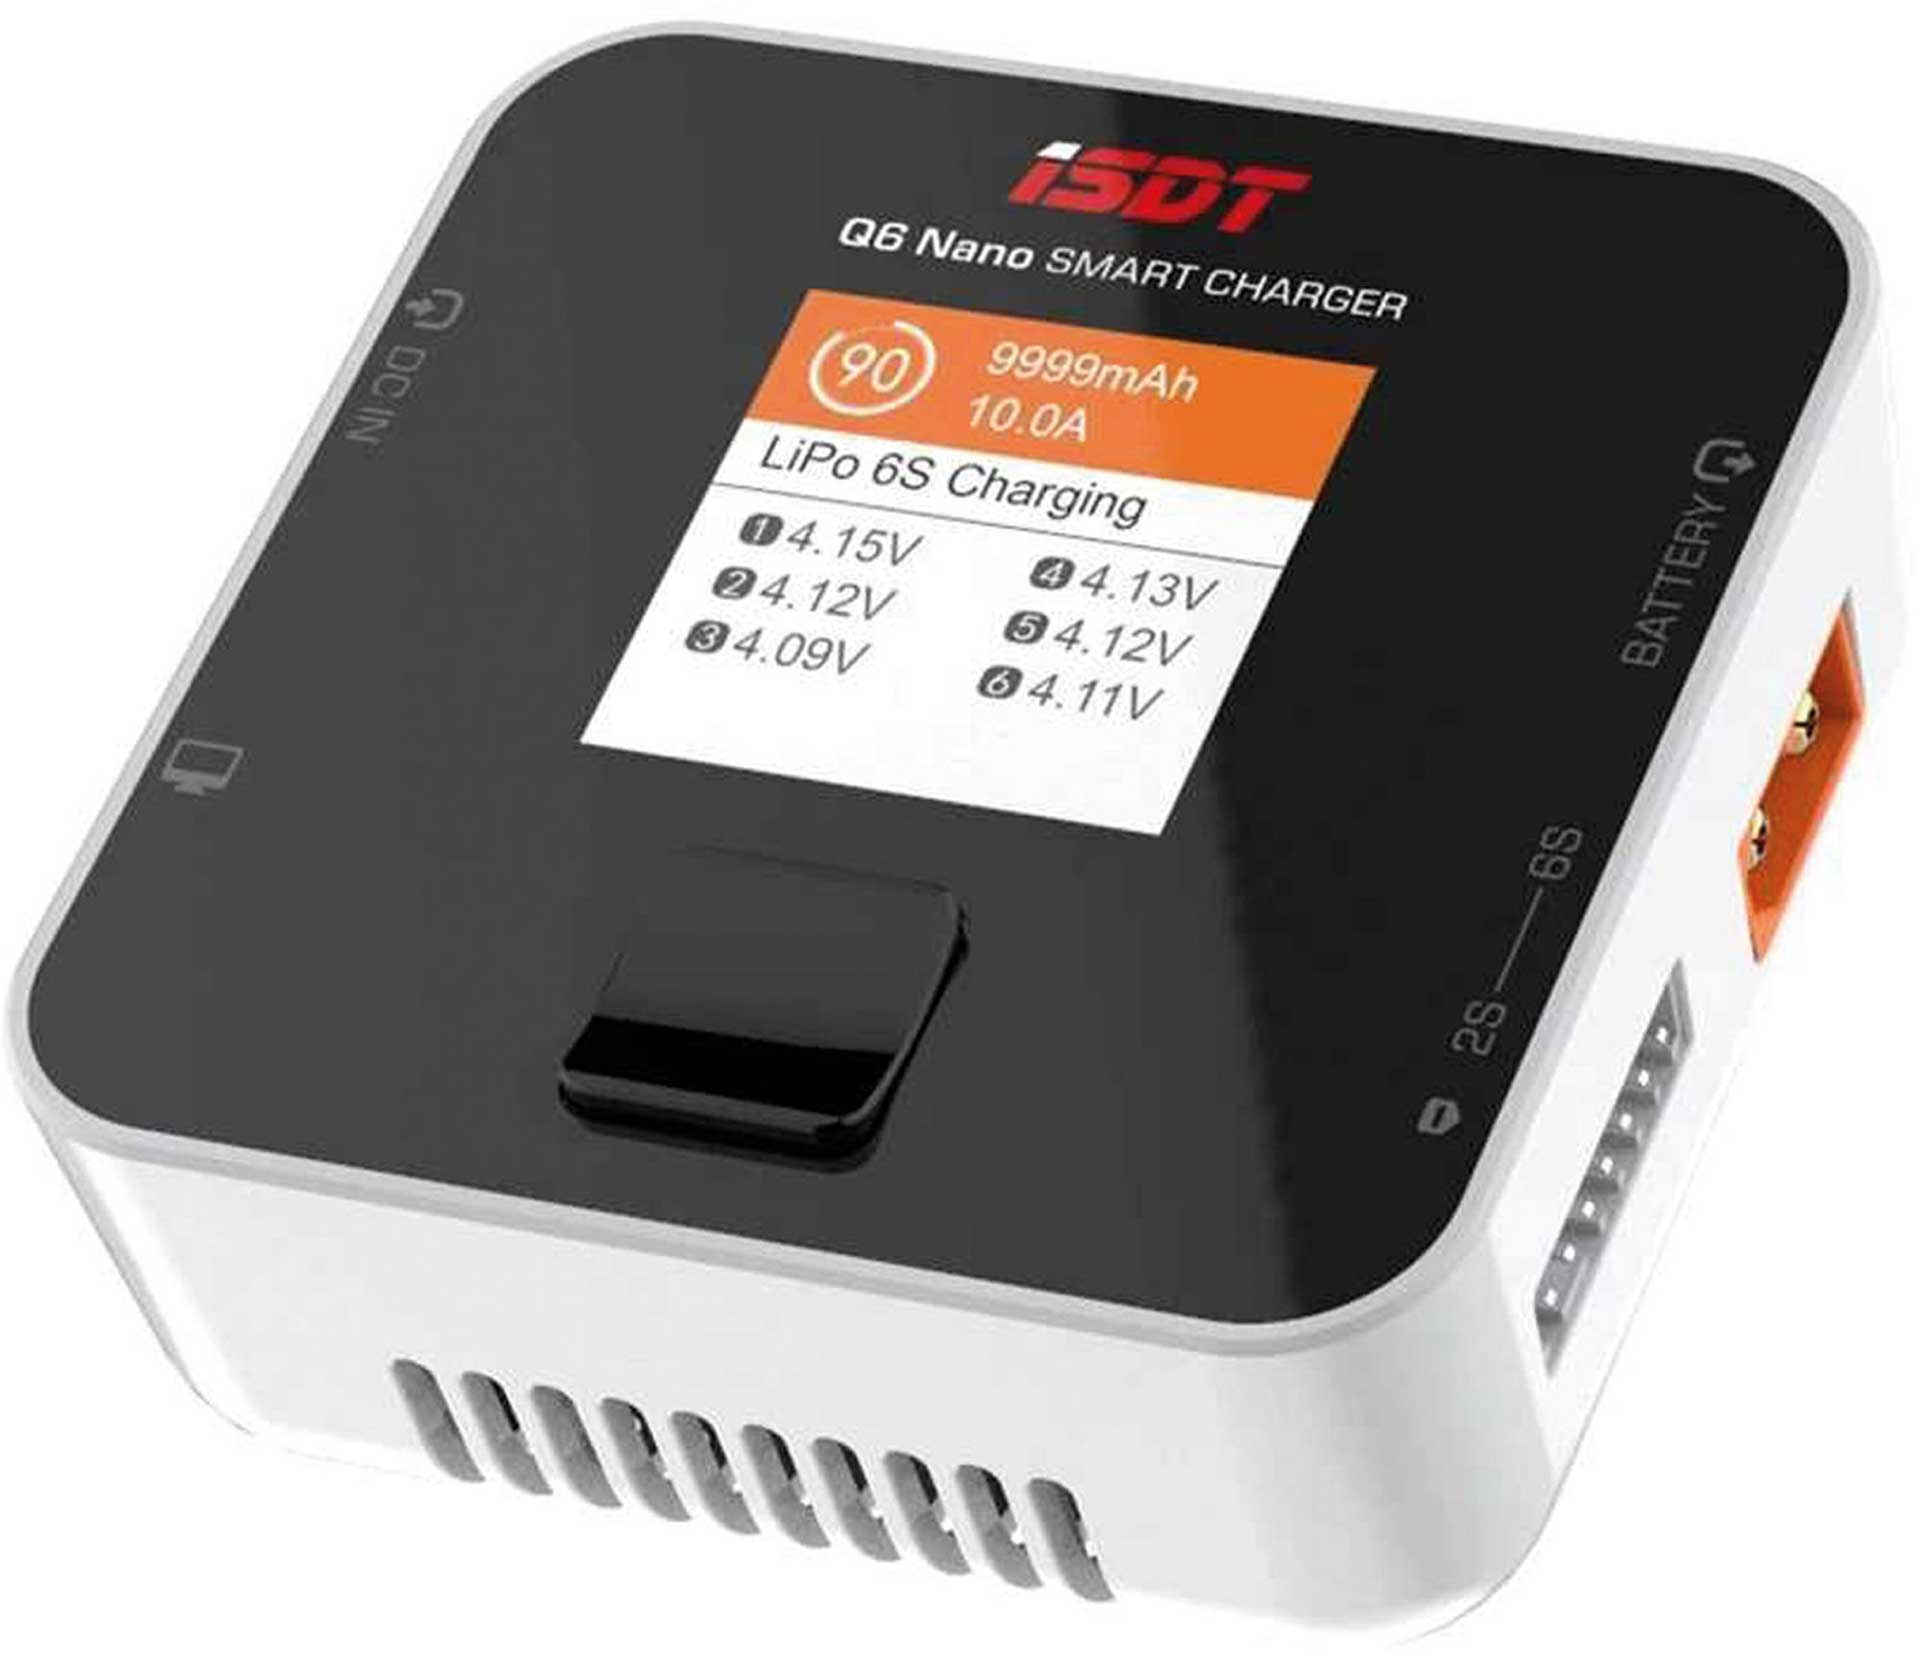 ISDT Q6 NANO SMART CHARGER 200W 1-6S -8A Ladegerät